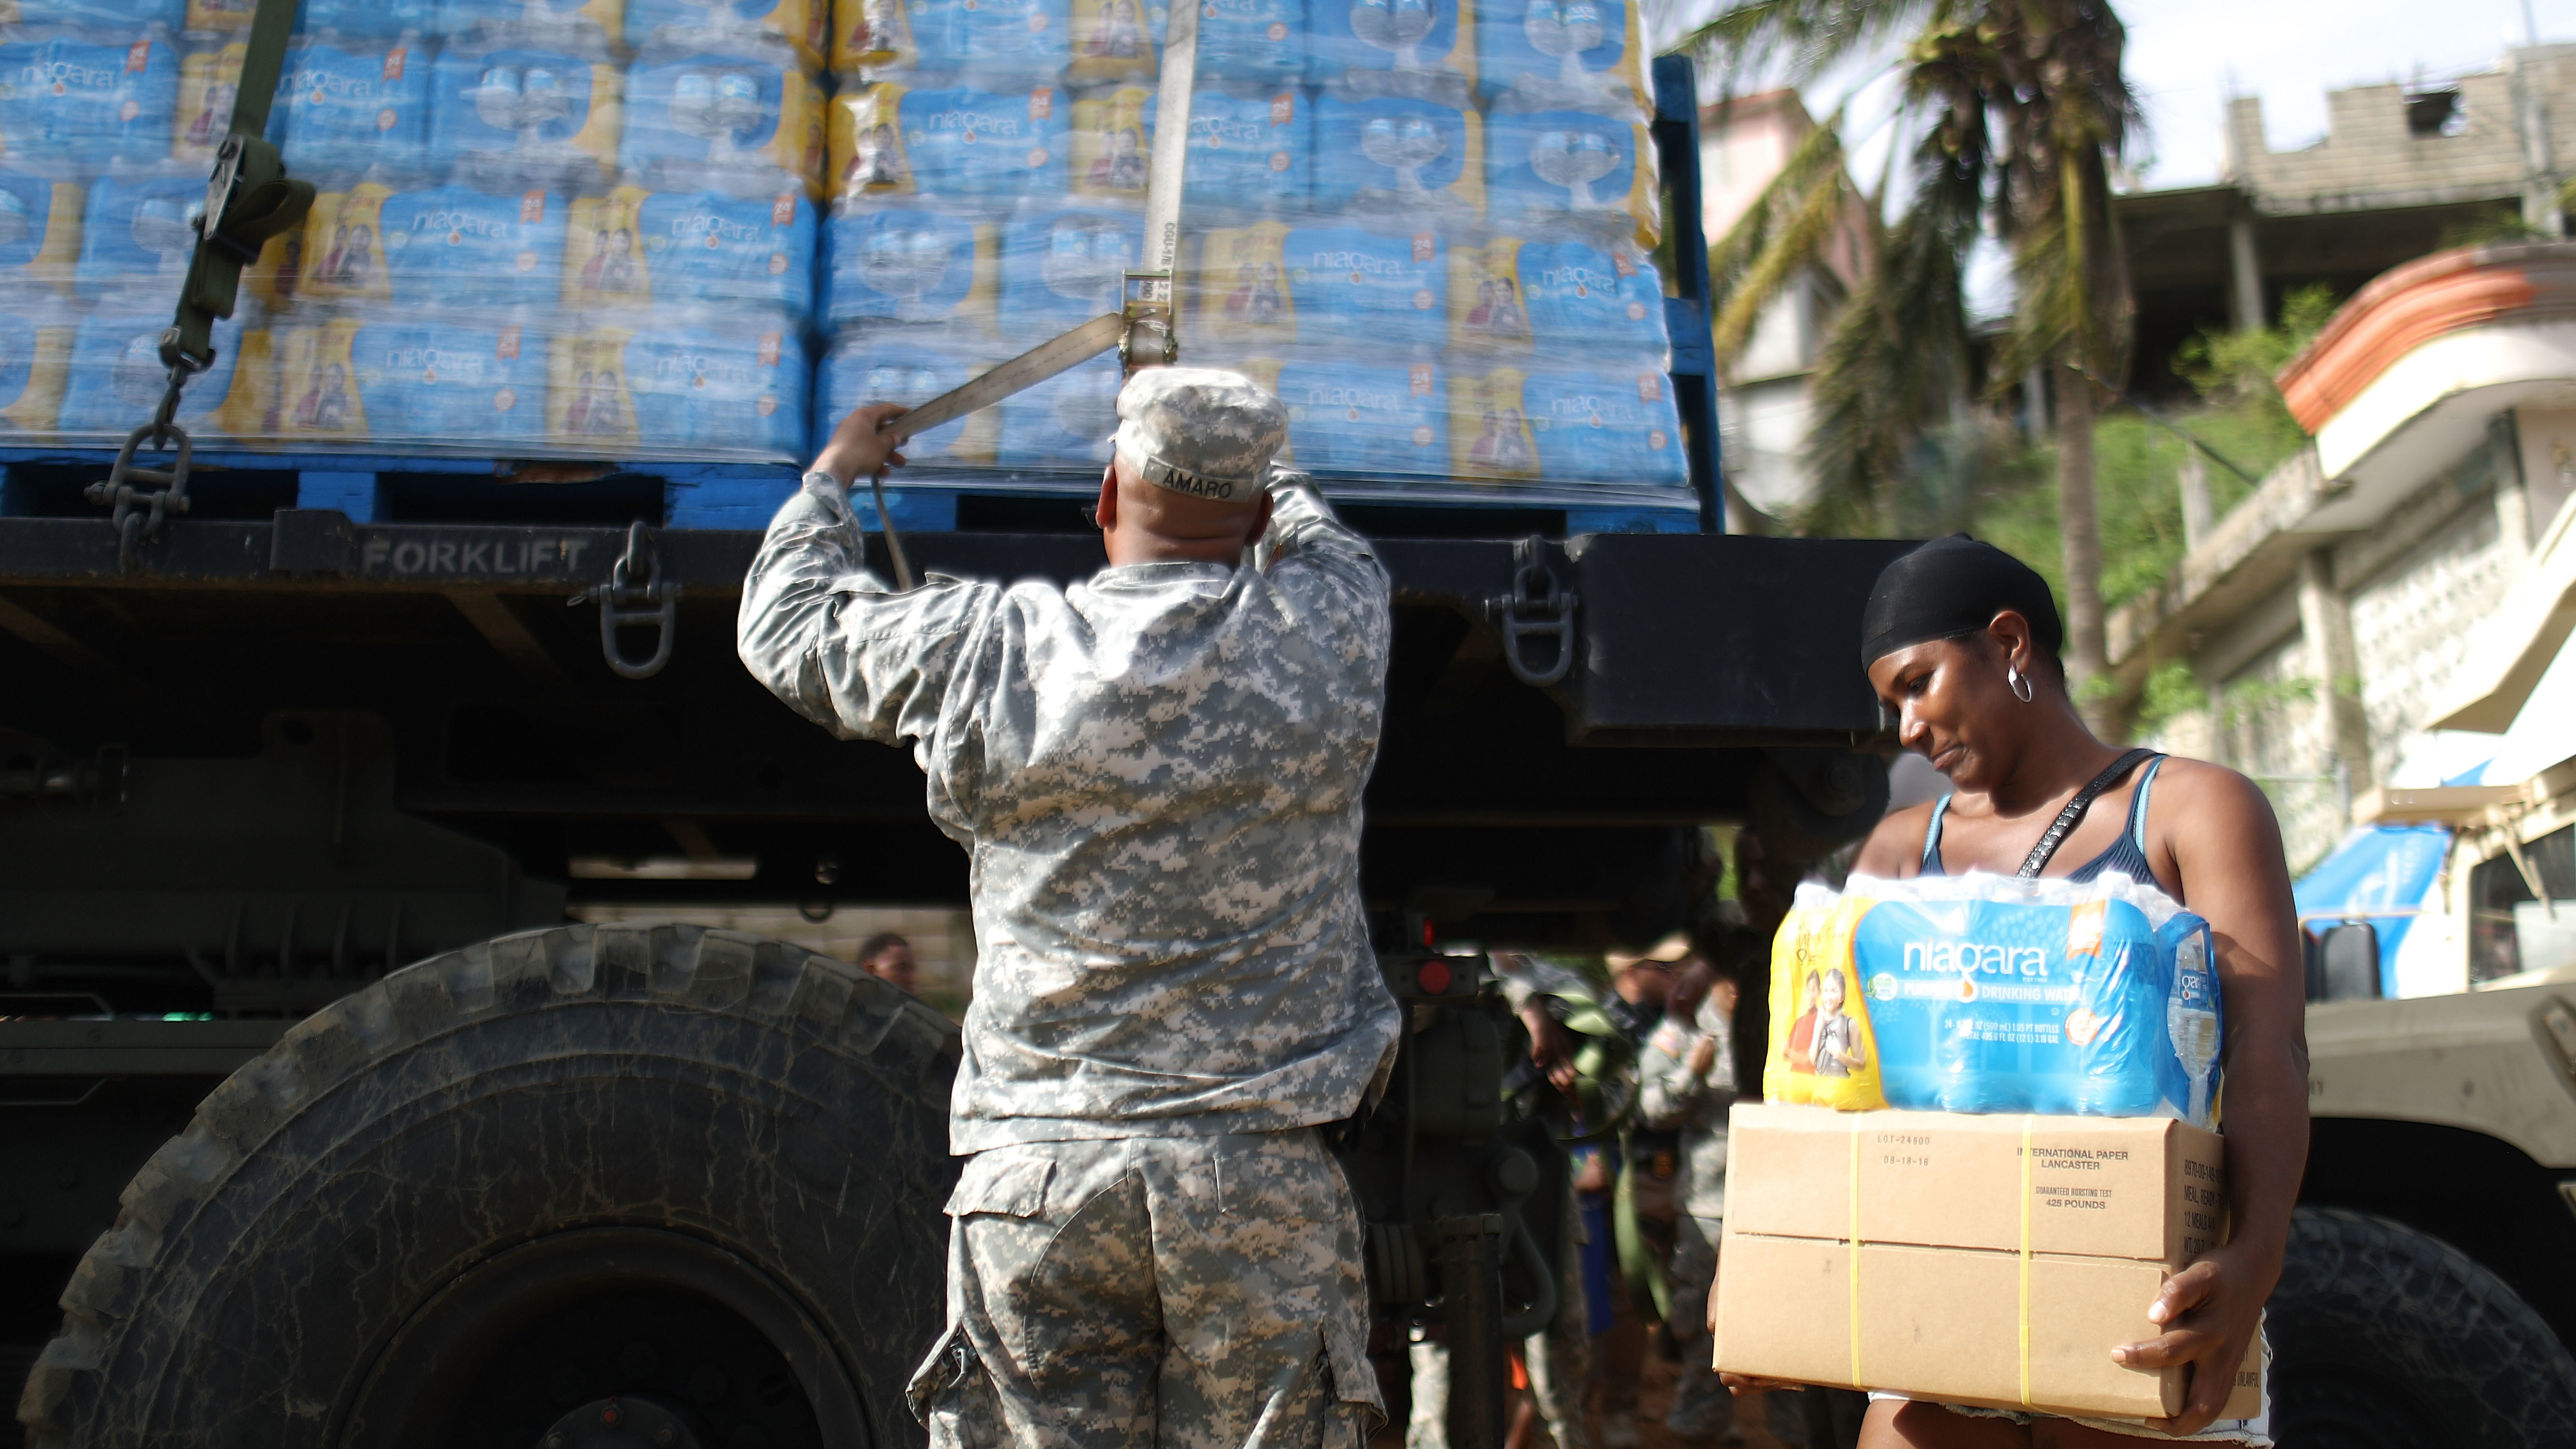 A U.S. Army soldier unloads a shipment of water provided by FEMA as a resident walks past in San Isidro, Puerto Rico